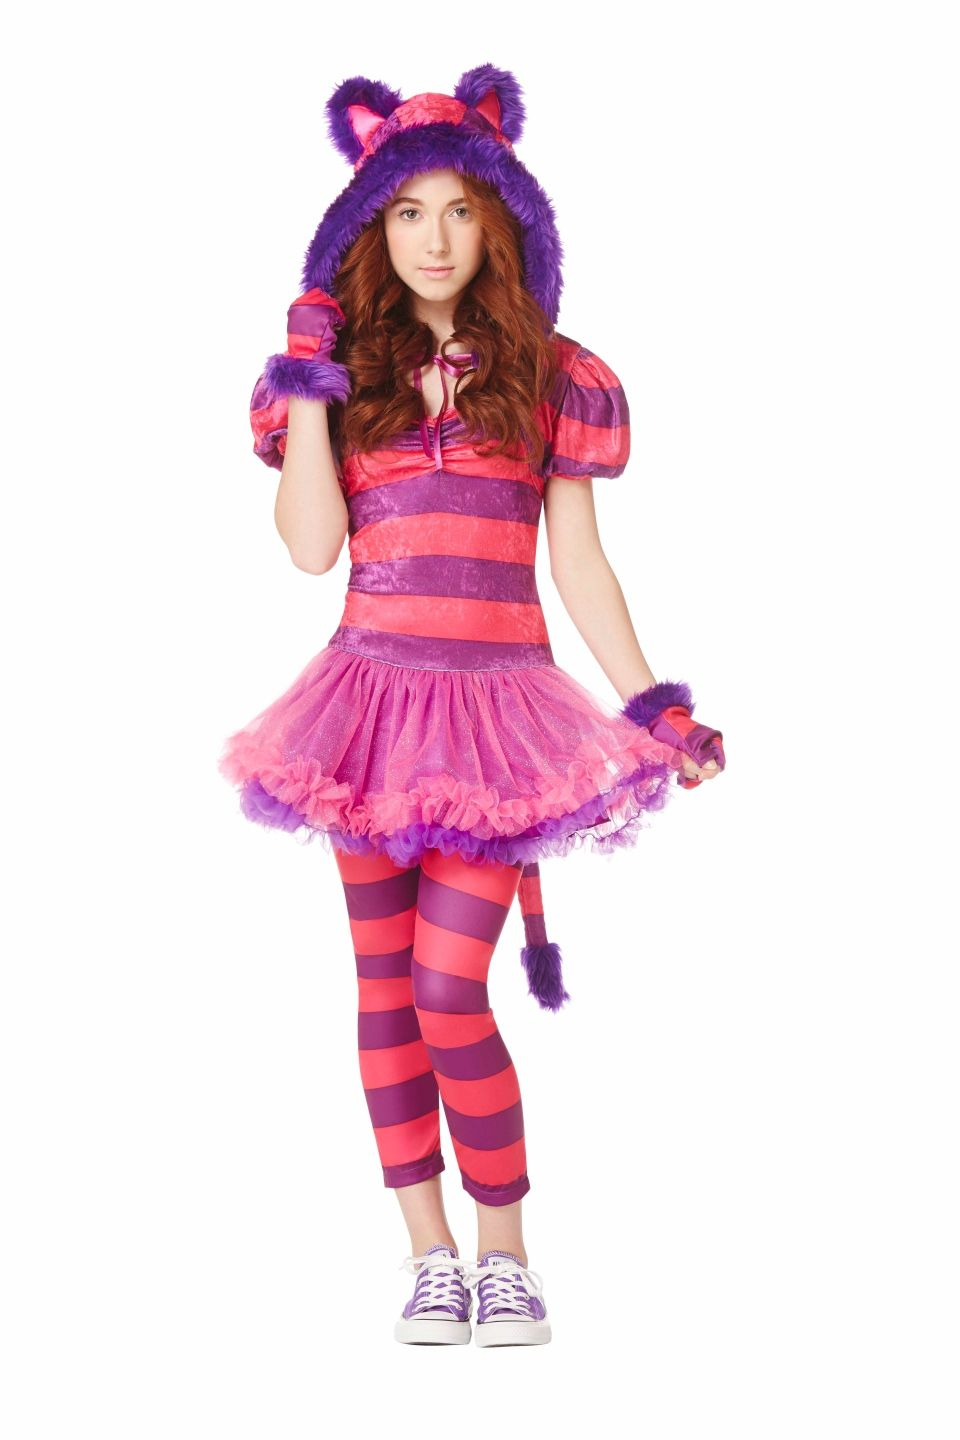 Halloween Costume Ideas For Girls Age 11, Halloween Costume Ideas ...